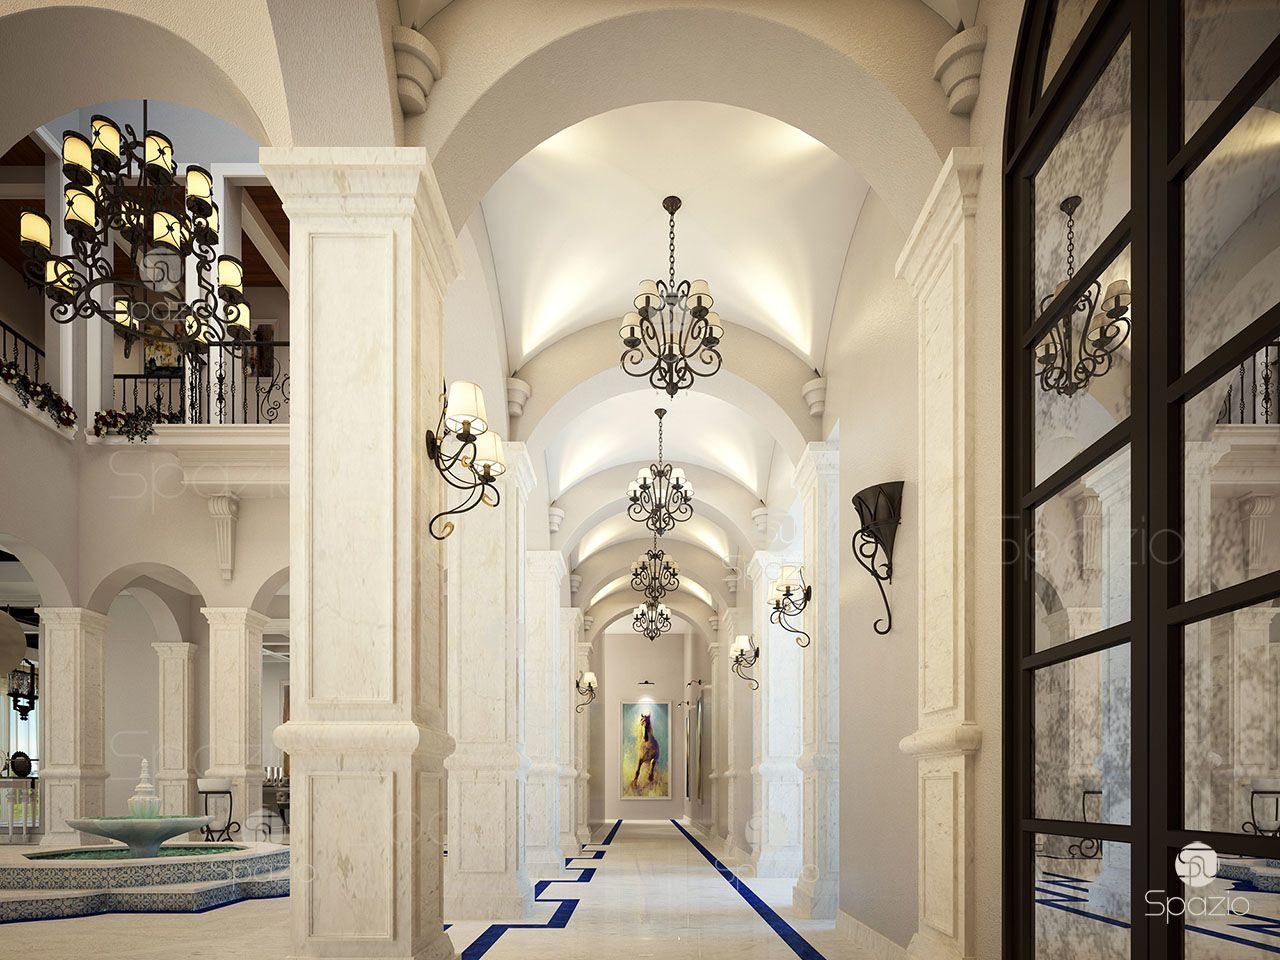 Beautiful hall with high ceilings in white color designed by architect of Spazio luxury interior design company in Dubai